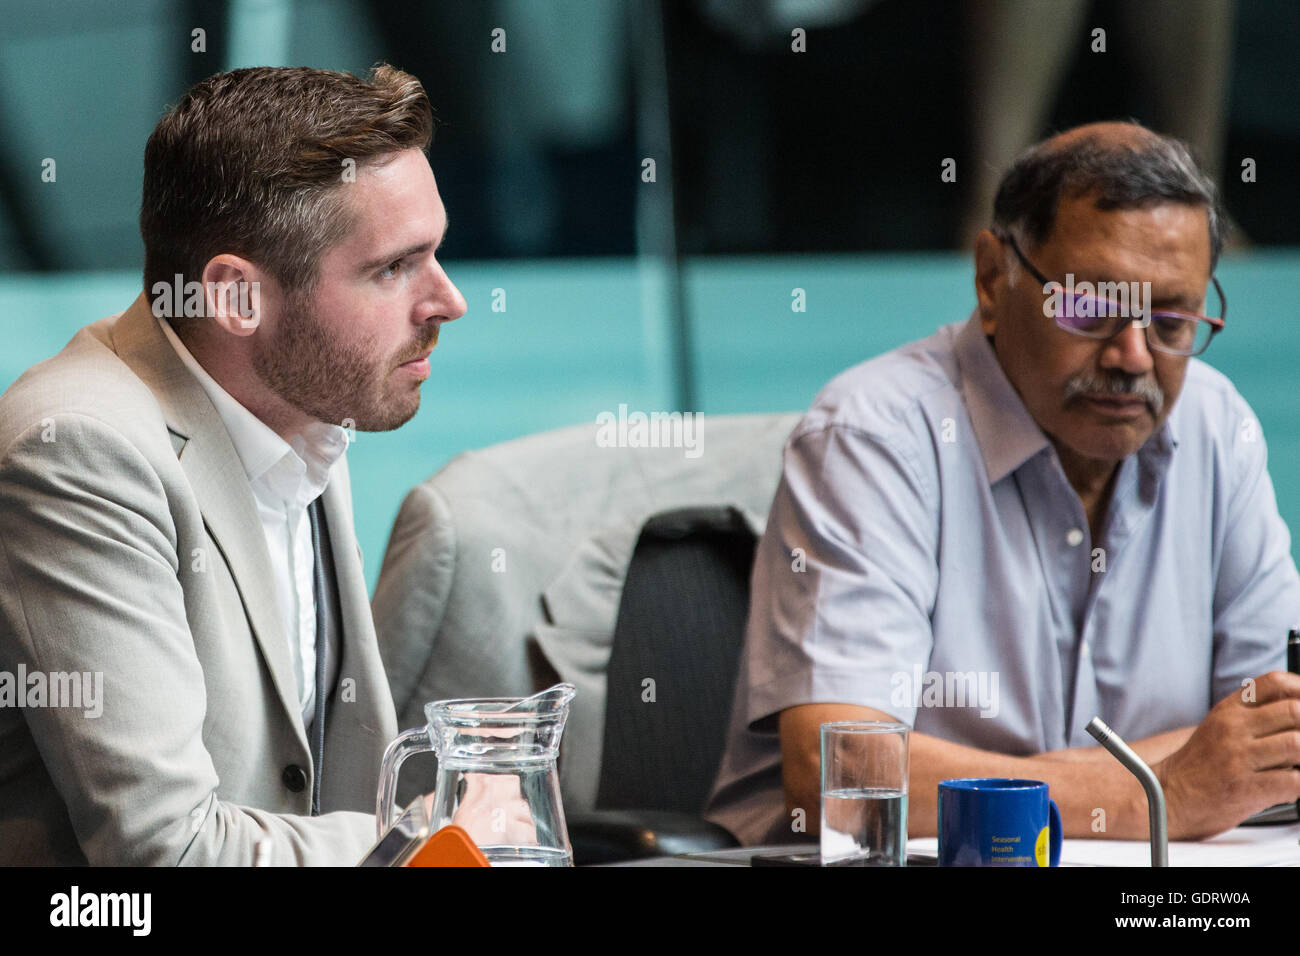 London, UK. 20th July, 2016. Tom Copley (c), Labour London Assembly member, asks a question to Sadiq Khan, Mayor - Stock Image